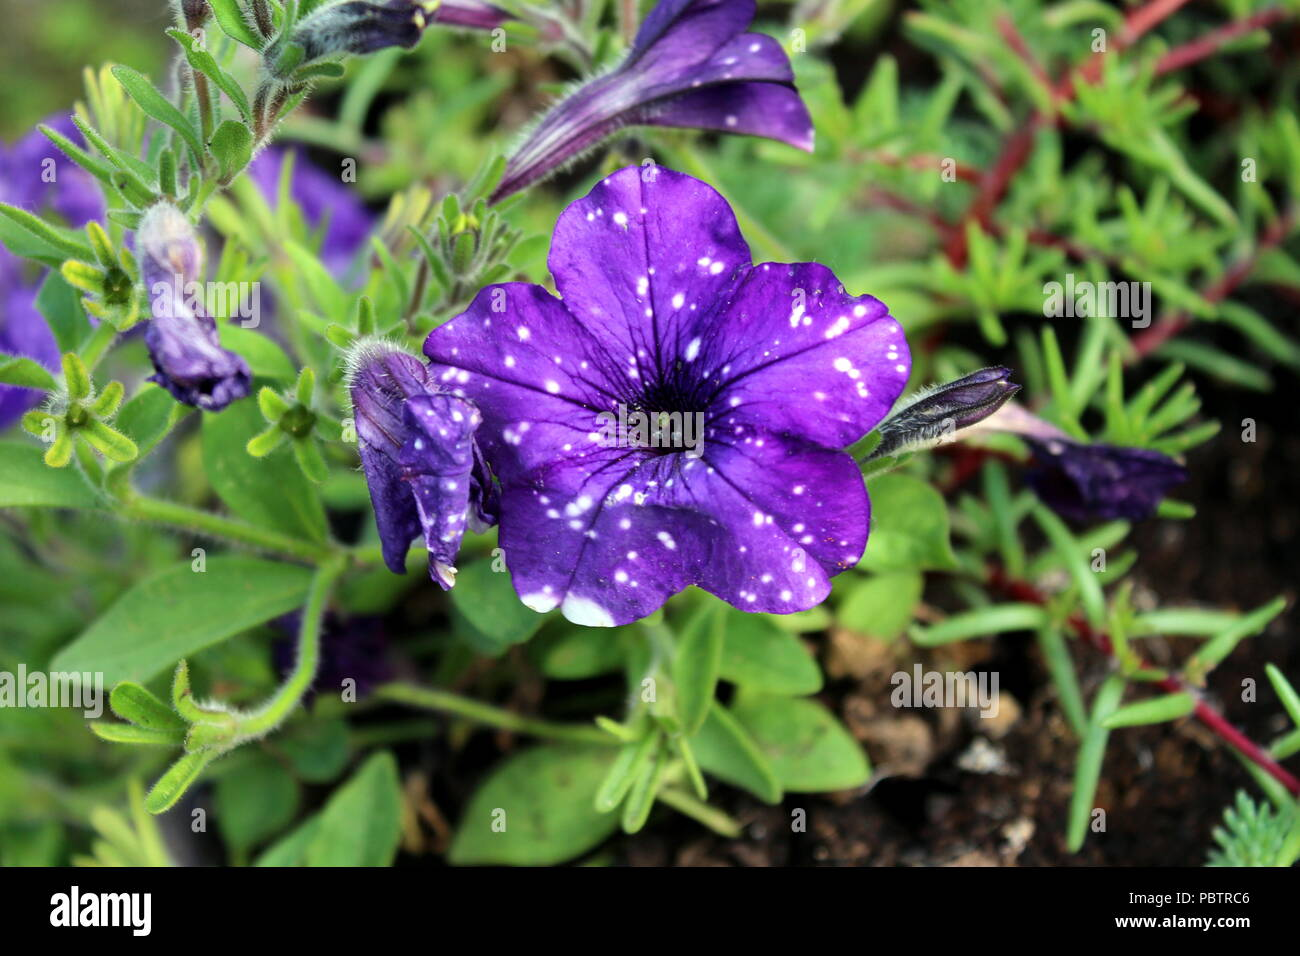 Petunia Night Sky flowers with starry white on purple pattern sparkles like the night sky or constellation of bright white stars that shines on the da - Stock Image